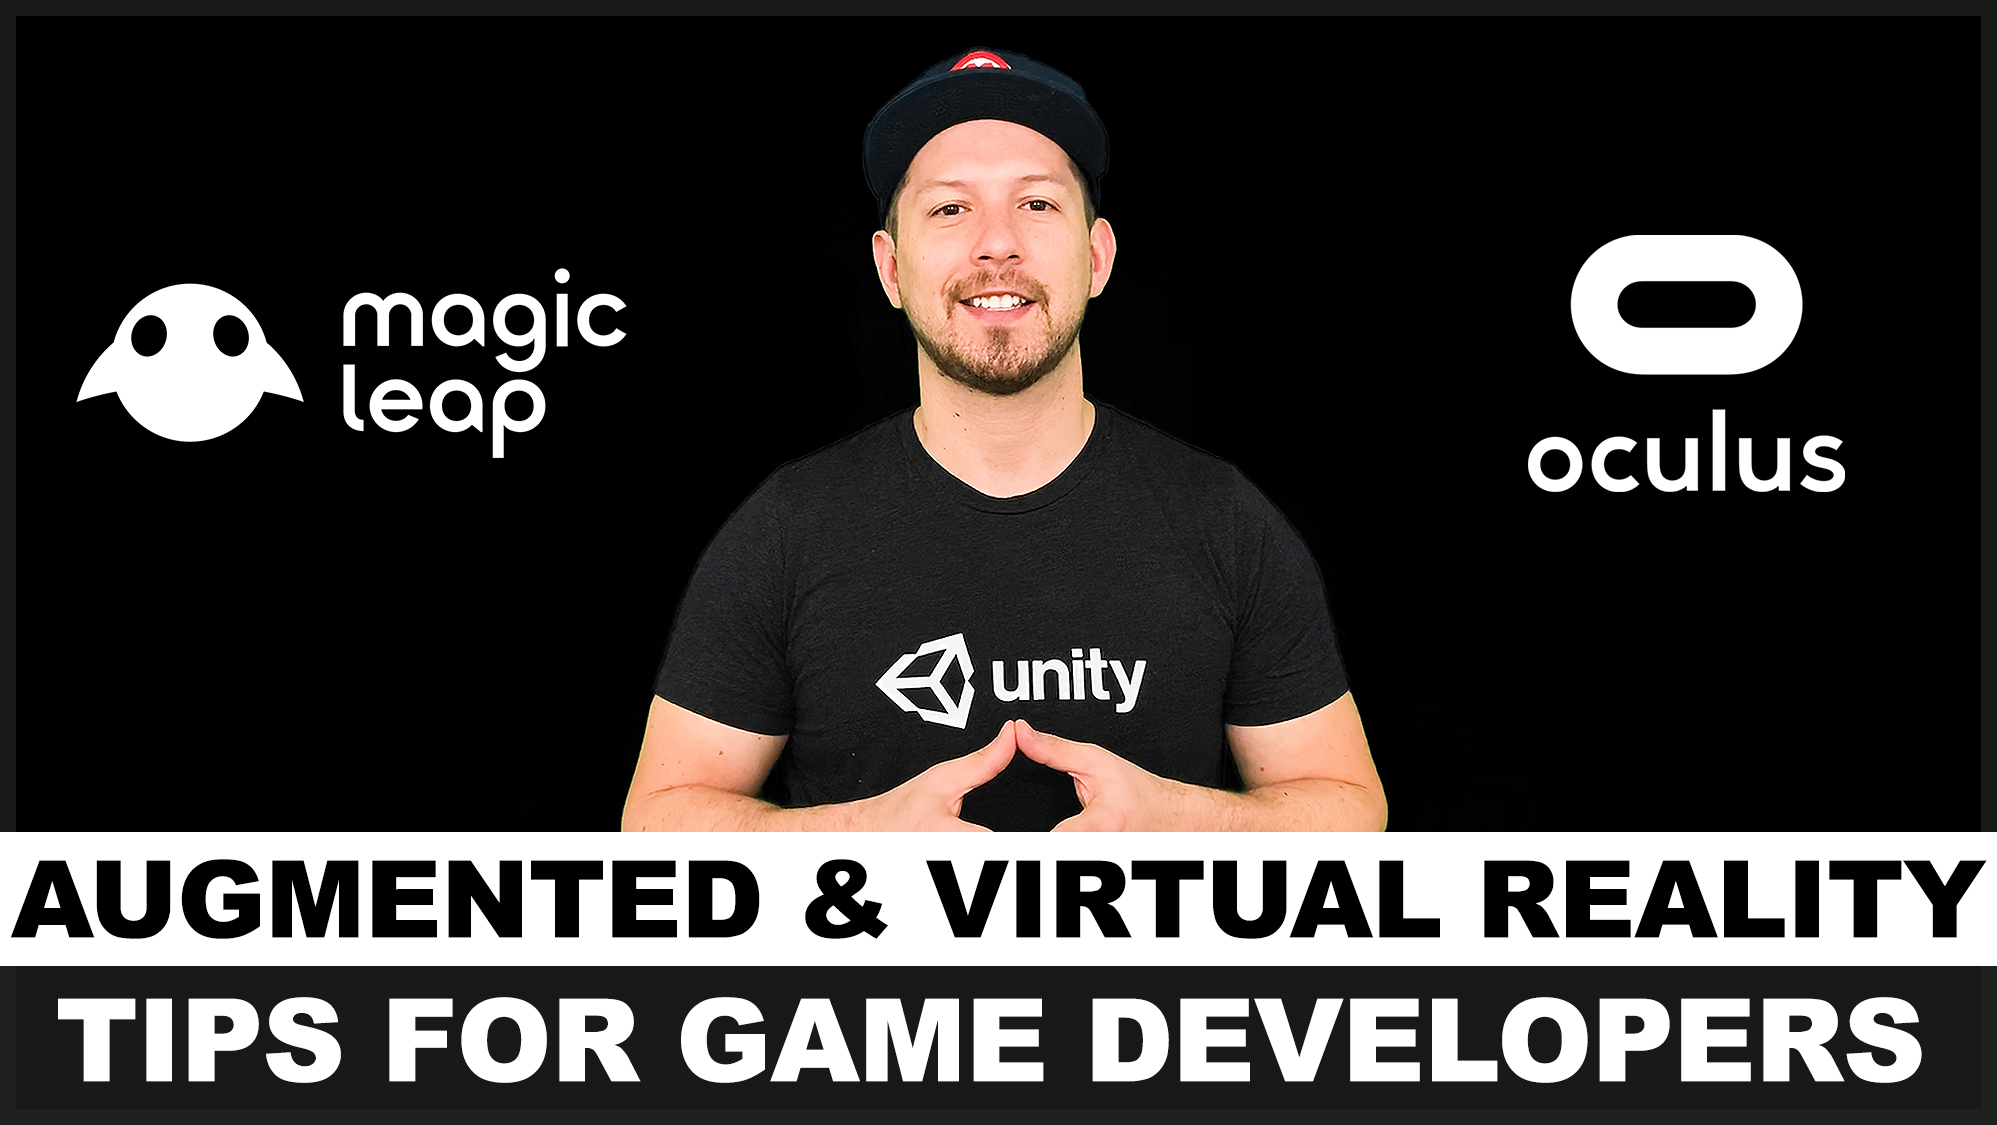 Unity3d Virtual Reality and Augmented Reality tips while I work on my new indie game